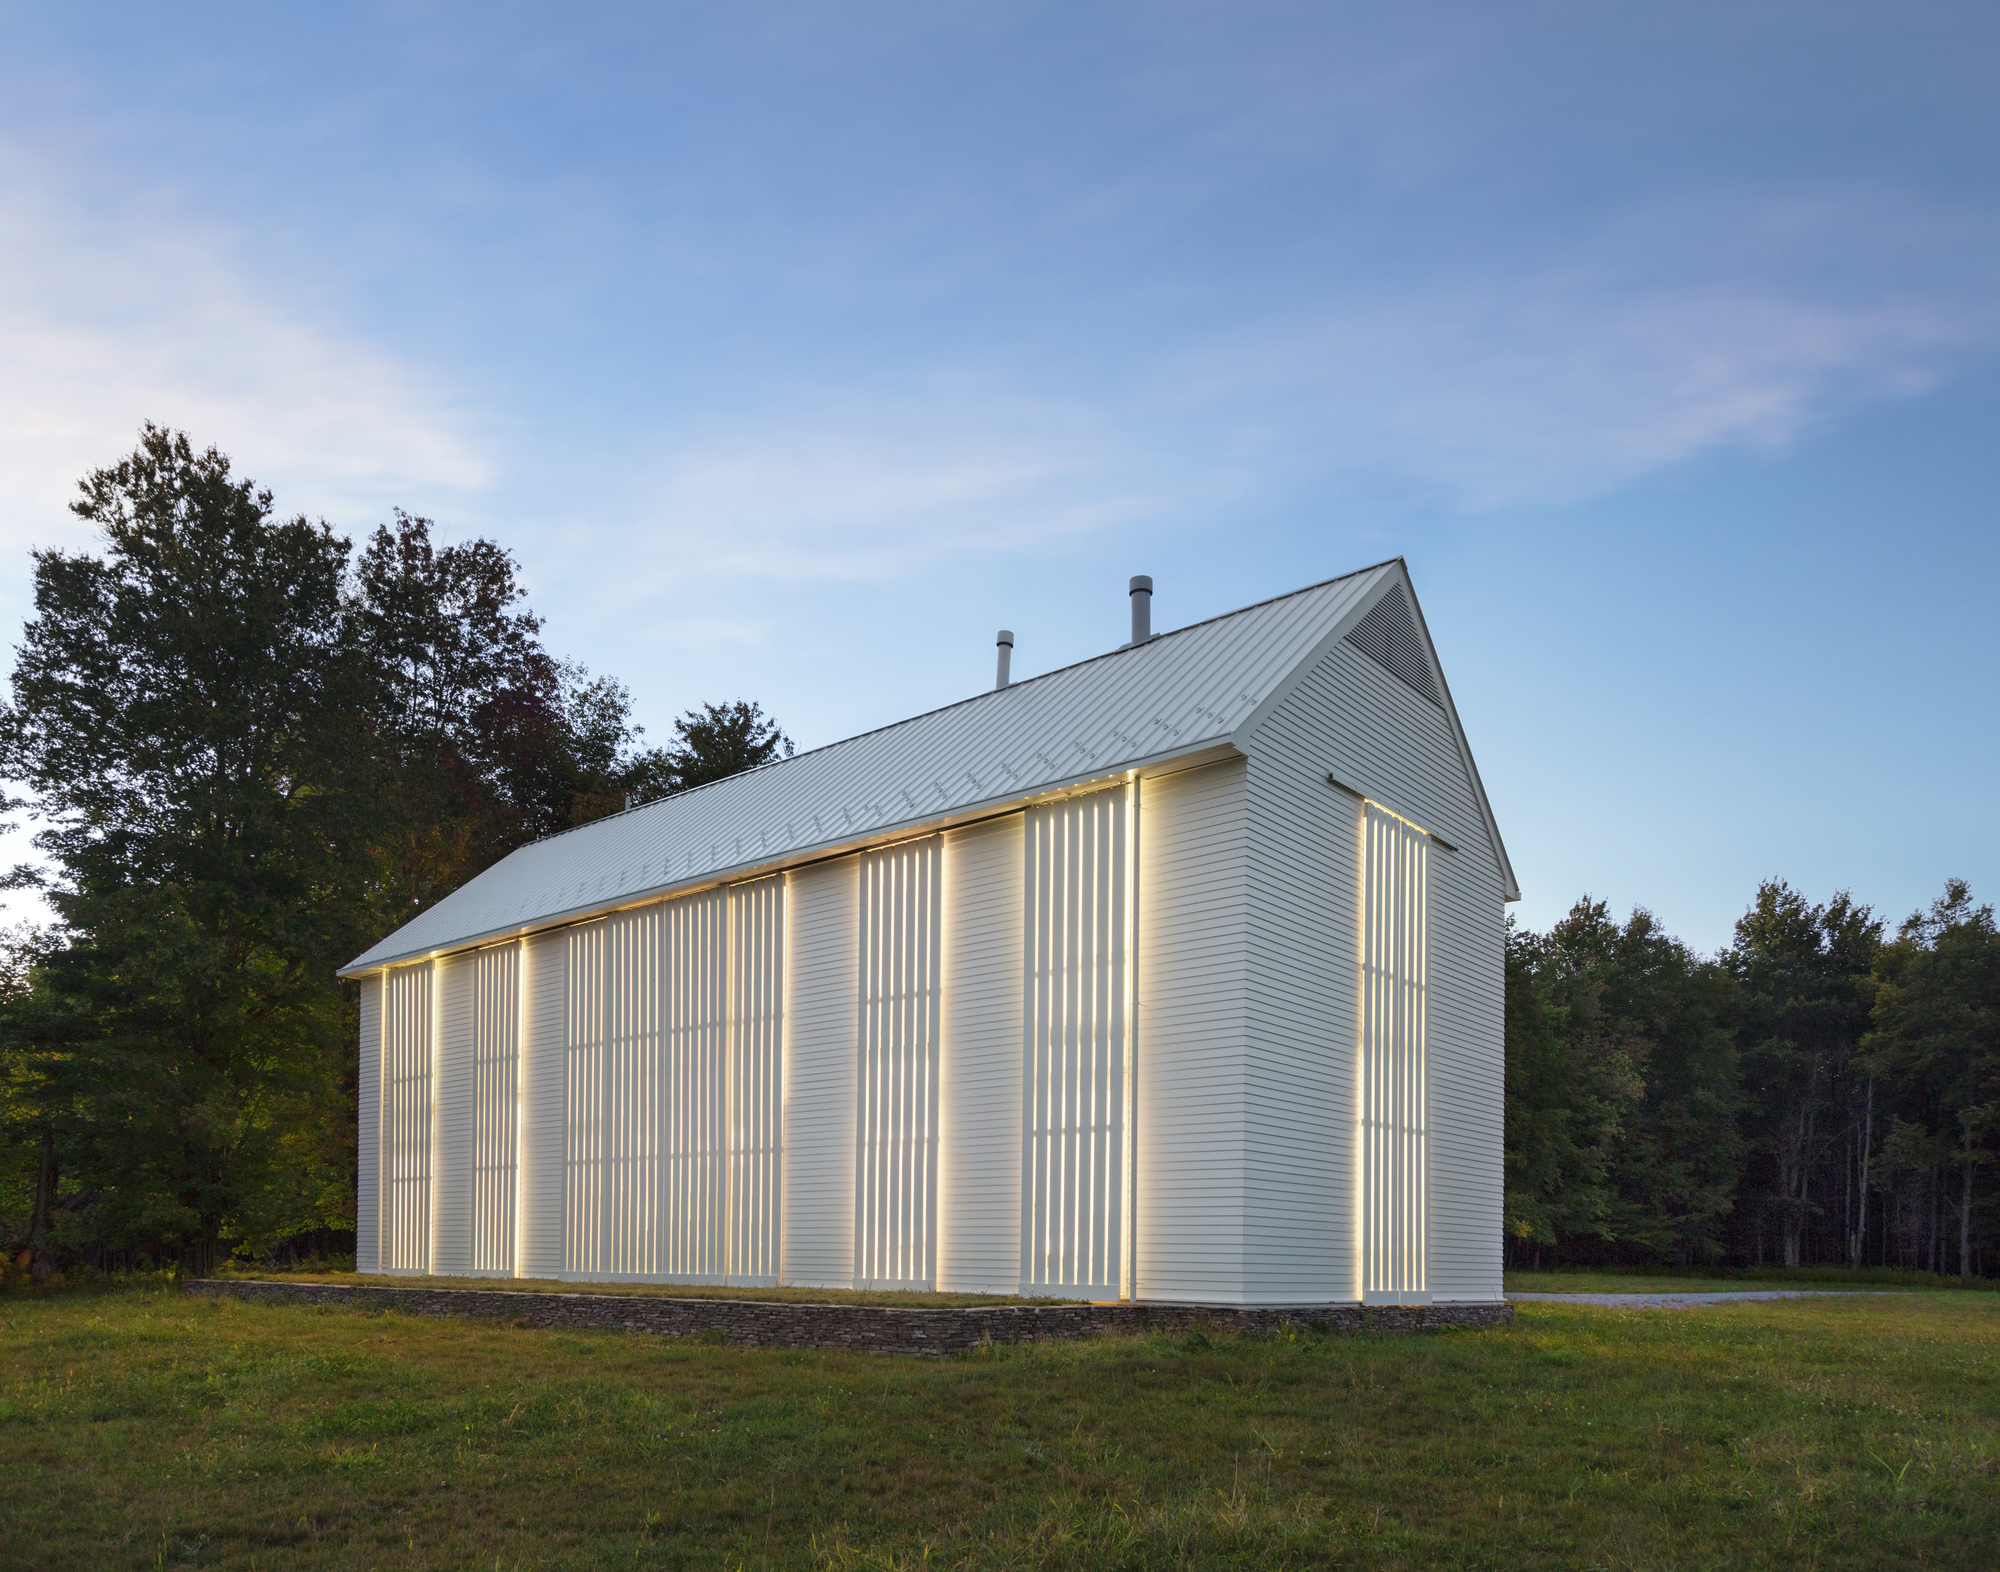 Farmhouse Architecture Features Pennsylvania Farmhouse Cutler Anderson Architects